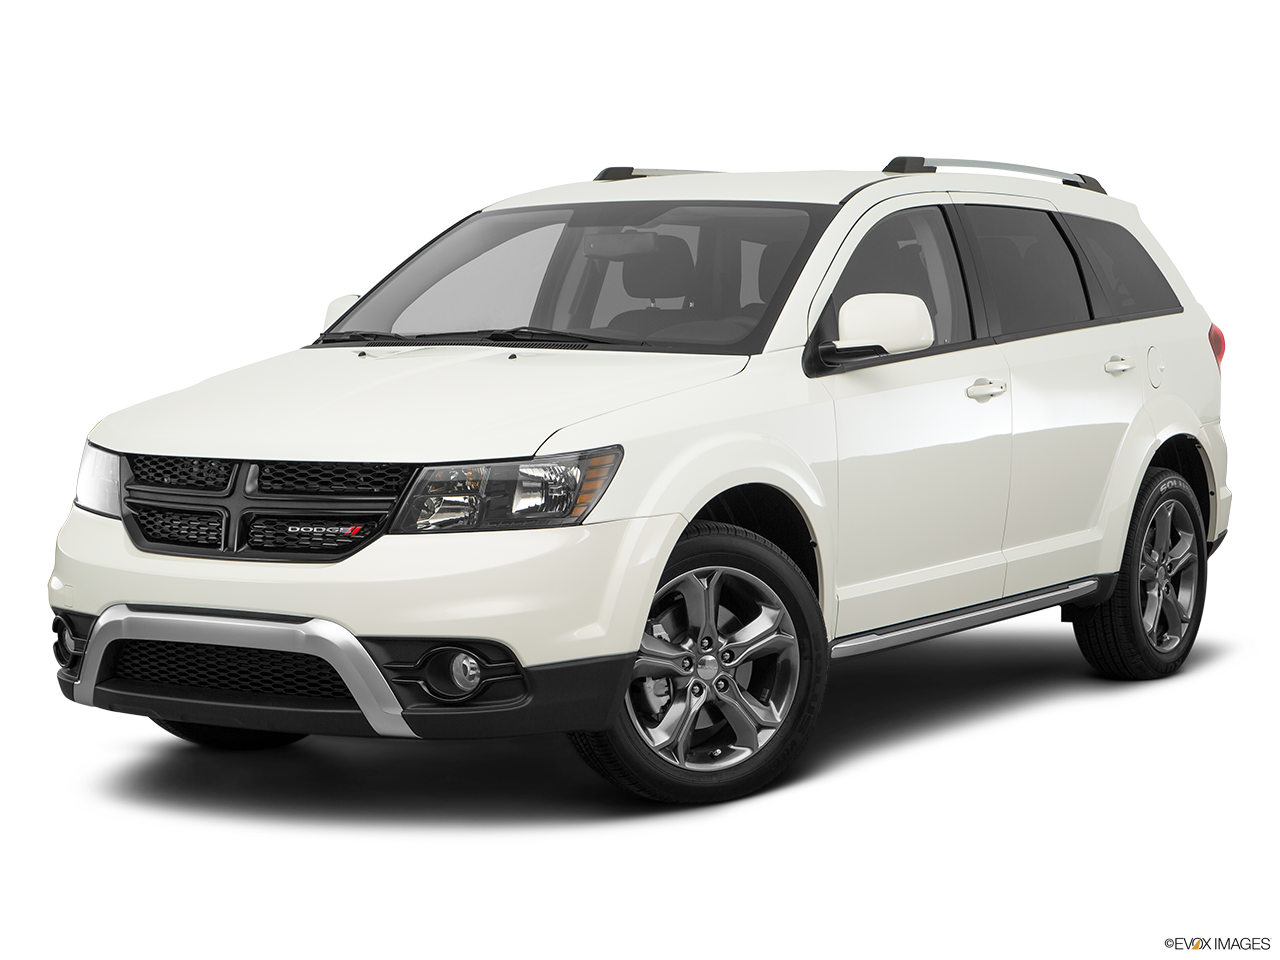 2017 dodge journey for sale near sacramento john l sullivan cjdr. Black Bedroom Furniture Sets. Home Design Ideas